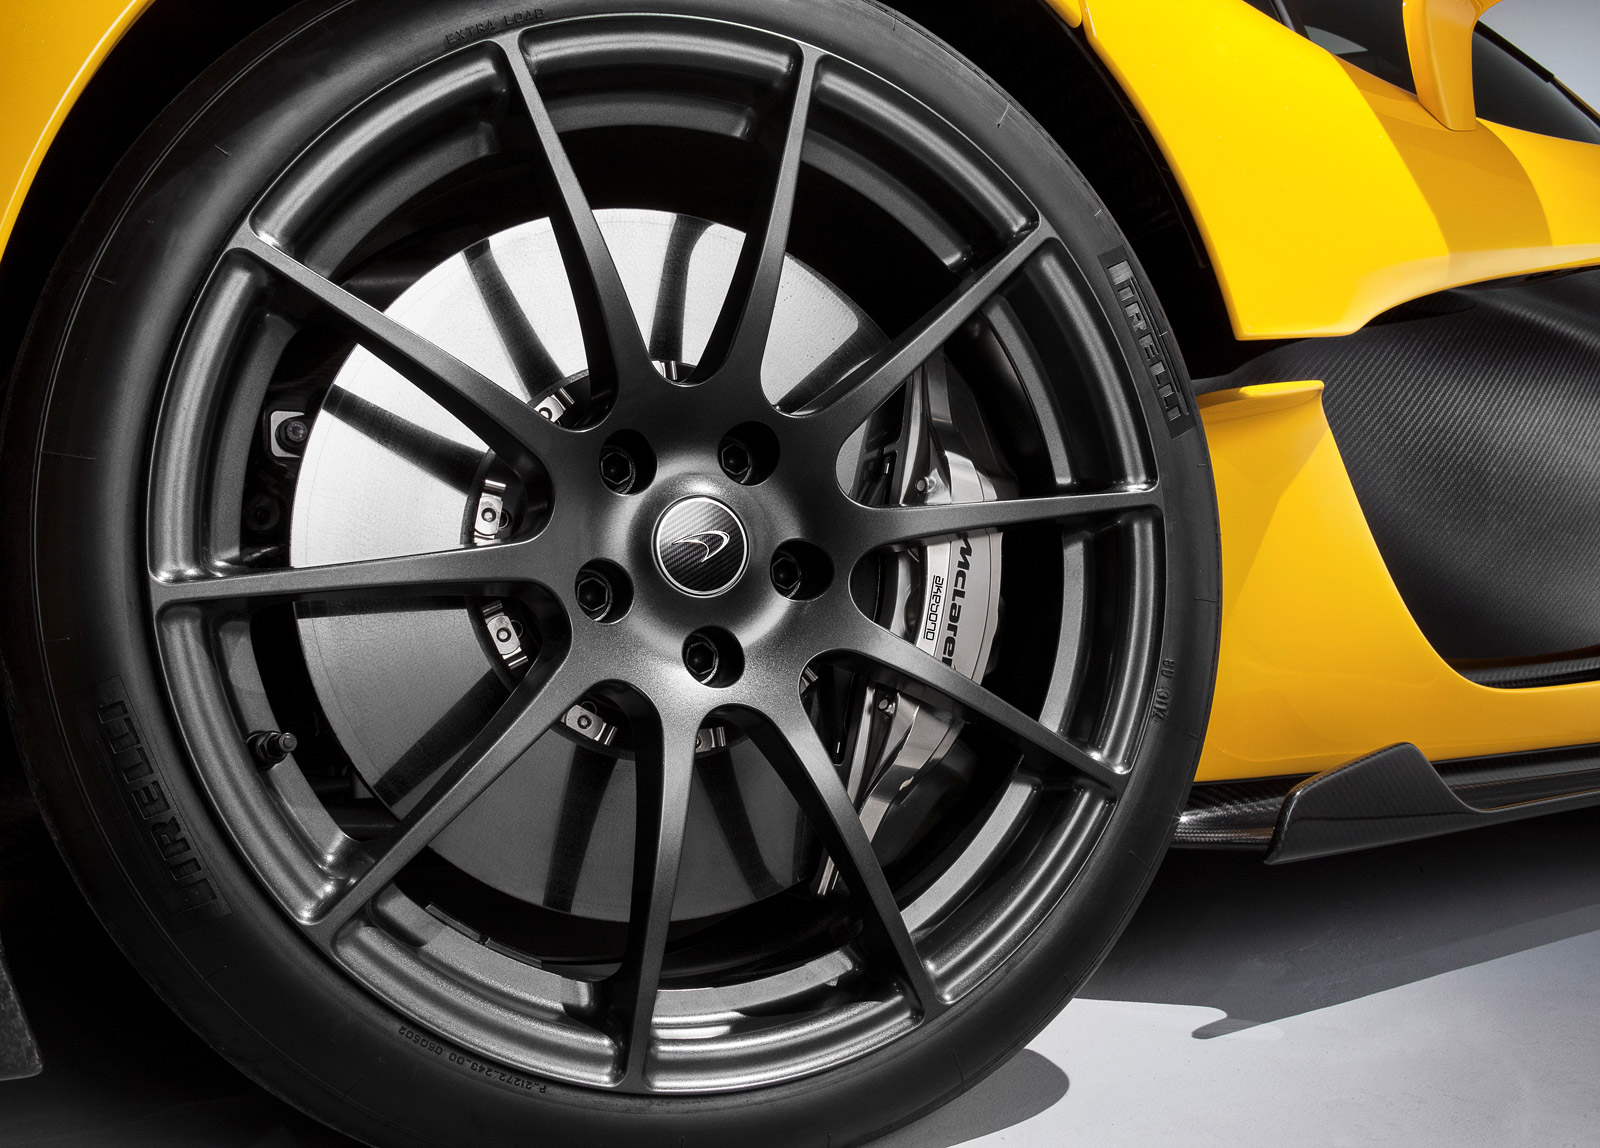 How The Mclaren P1 Puts Its Power Down Bespoke Pirelli